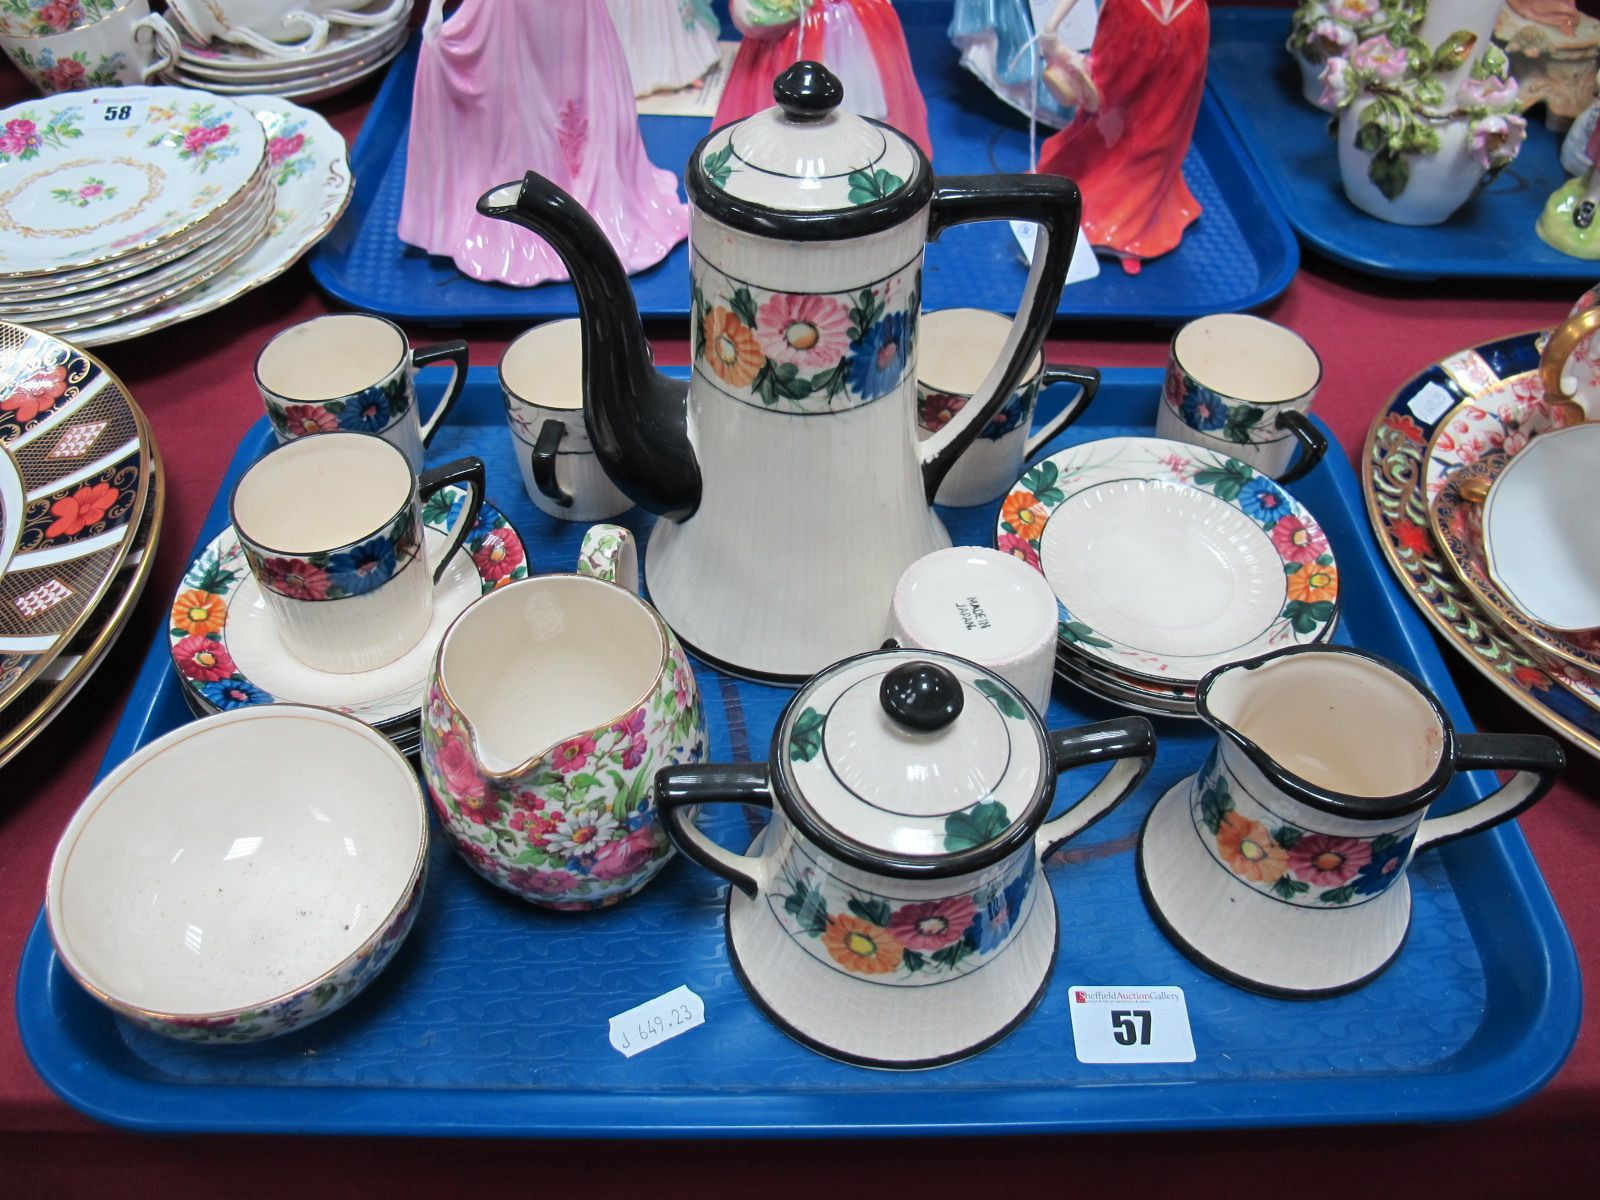 Lot 57 - A Japanese Marumon Pottery Coffee Service, with handpainted flowerhead borders, and a Royal